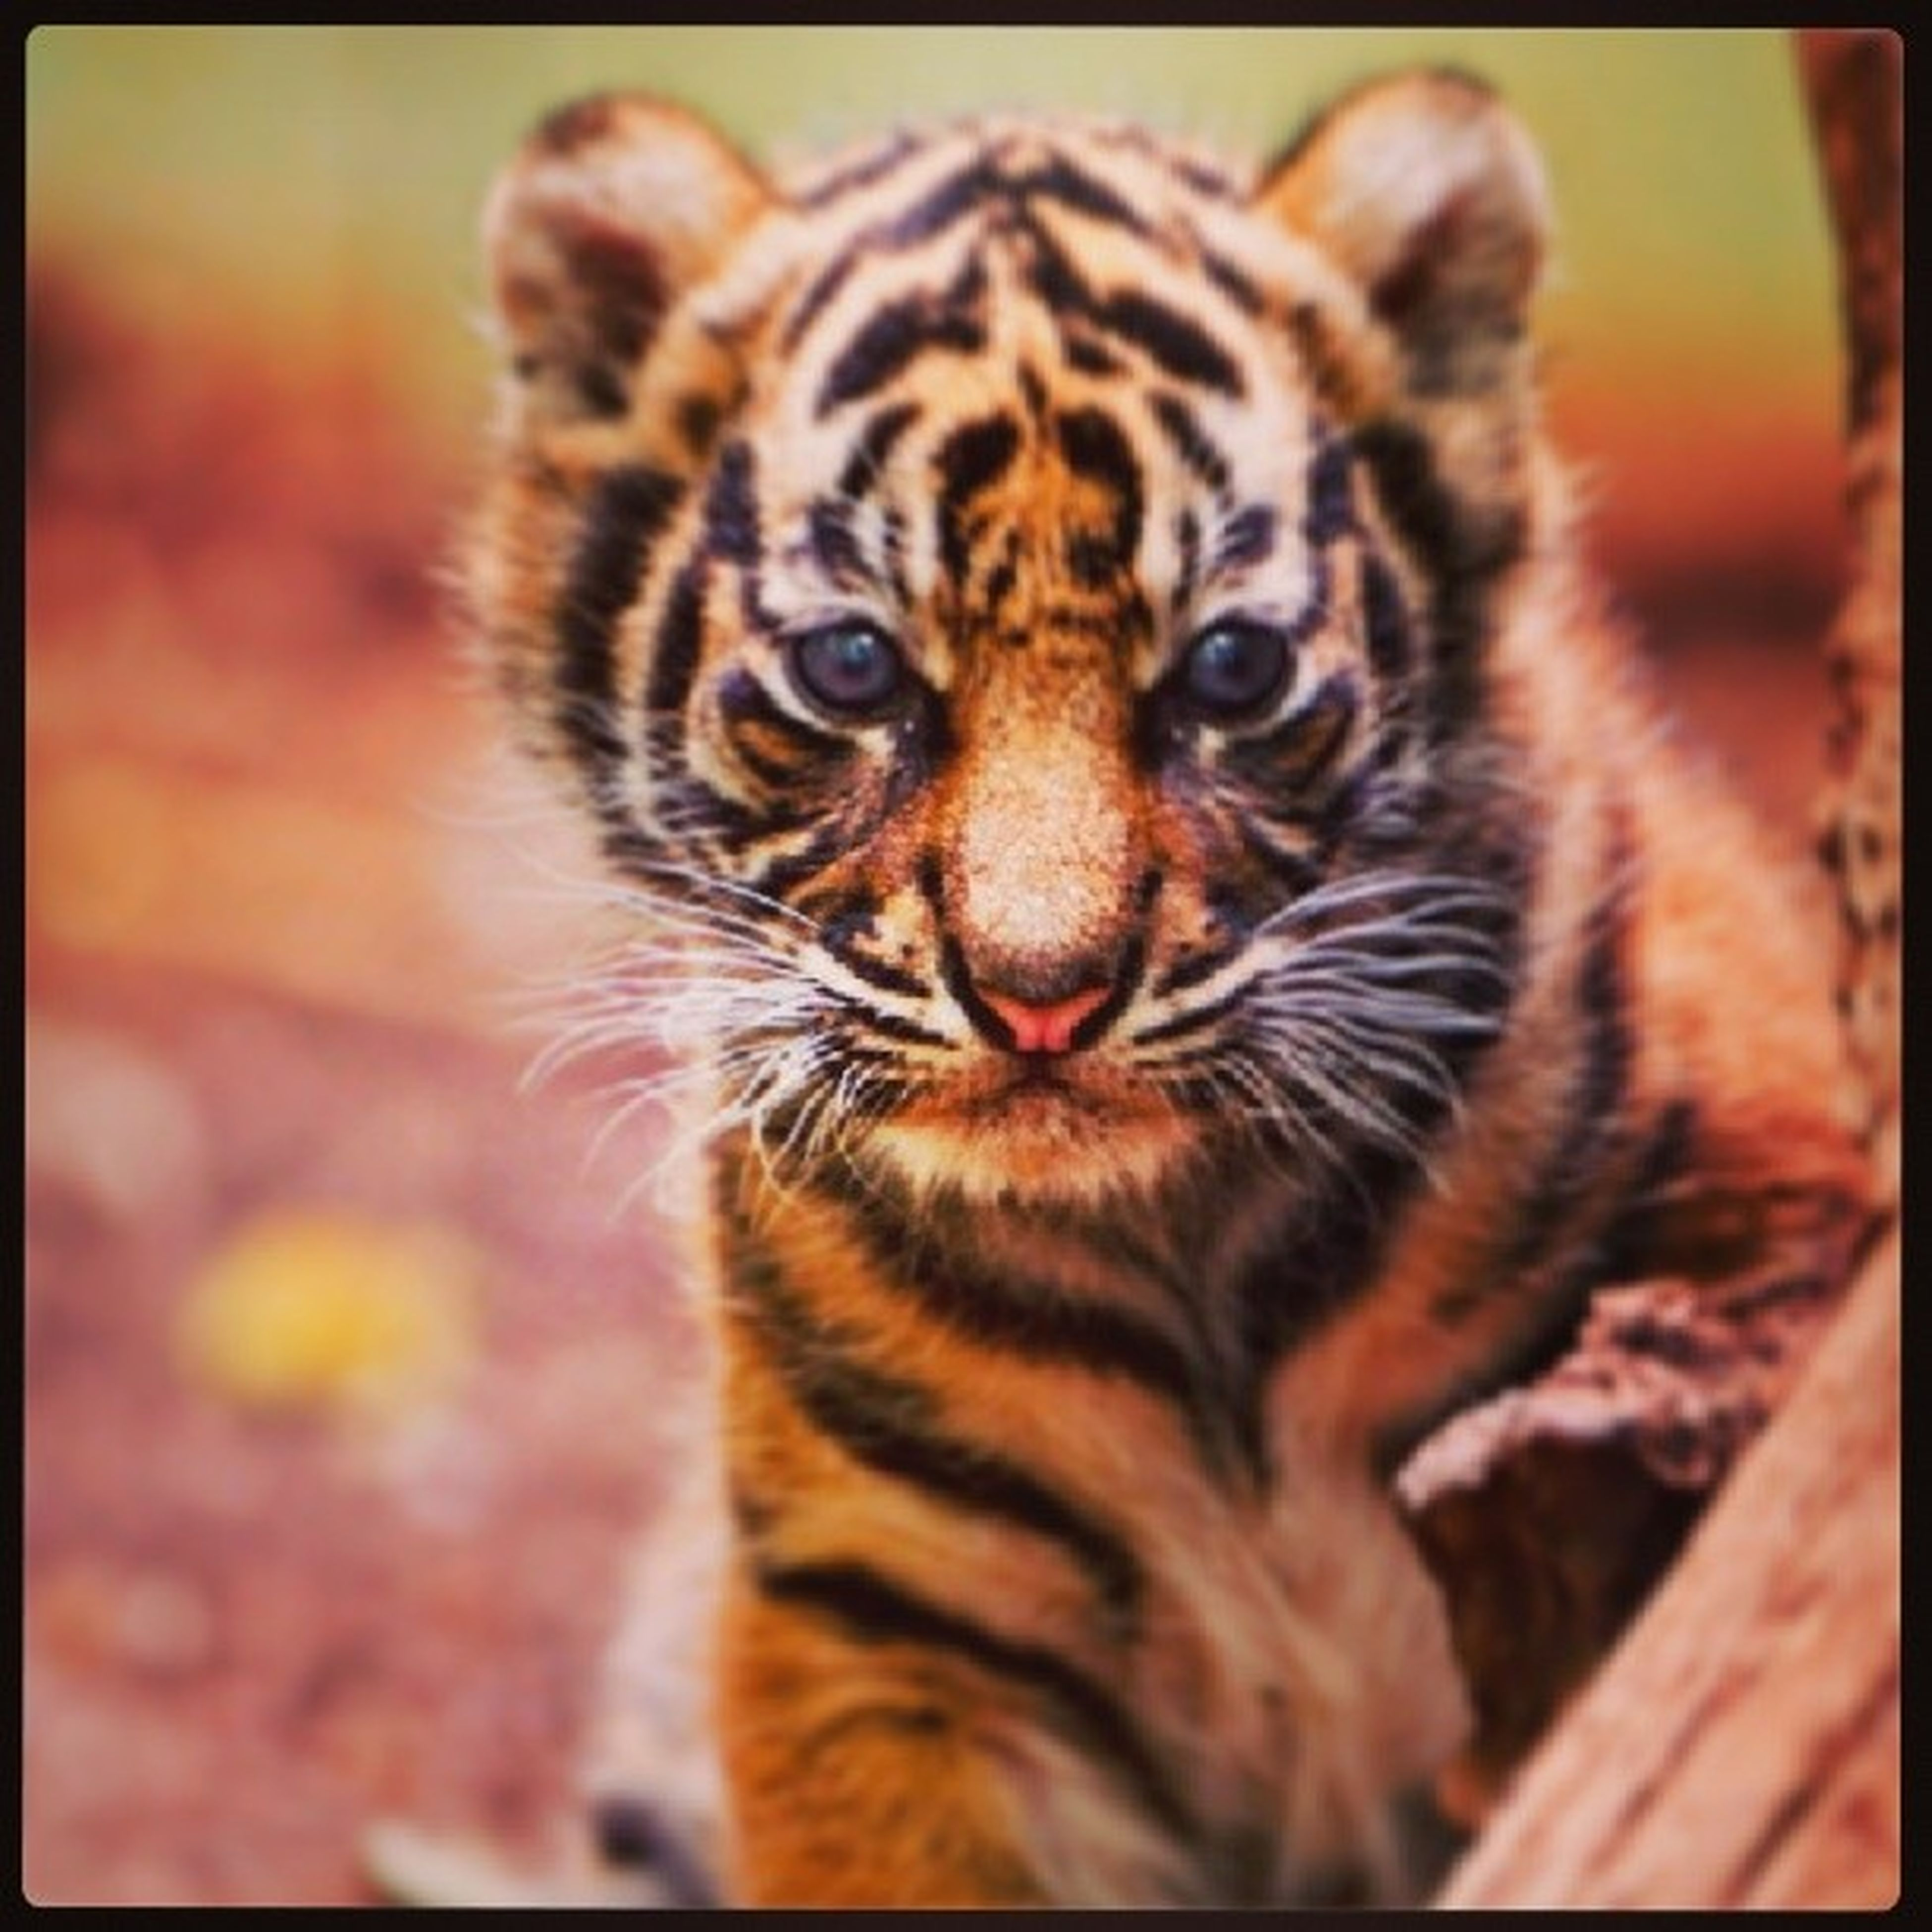 animal themes, one animal, transfer print, auto post production filter, mammal, close-up, wildlife, focus on foreground, animals in the wild, portrait, animal head, whisker, pets, looking at camera, outdoors, no people, animal markings, feline, zoology